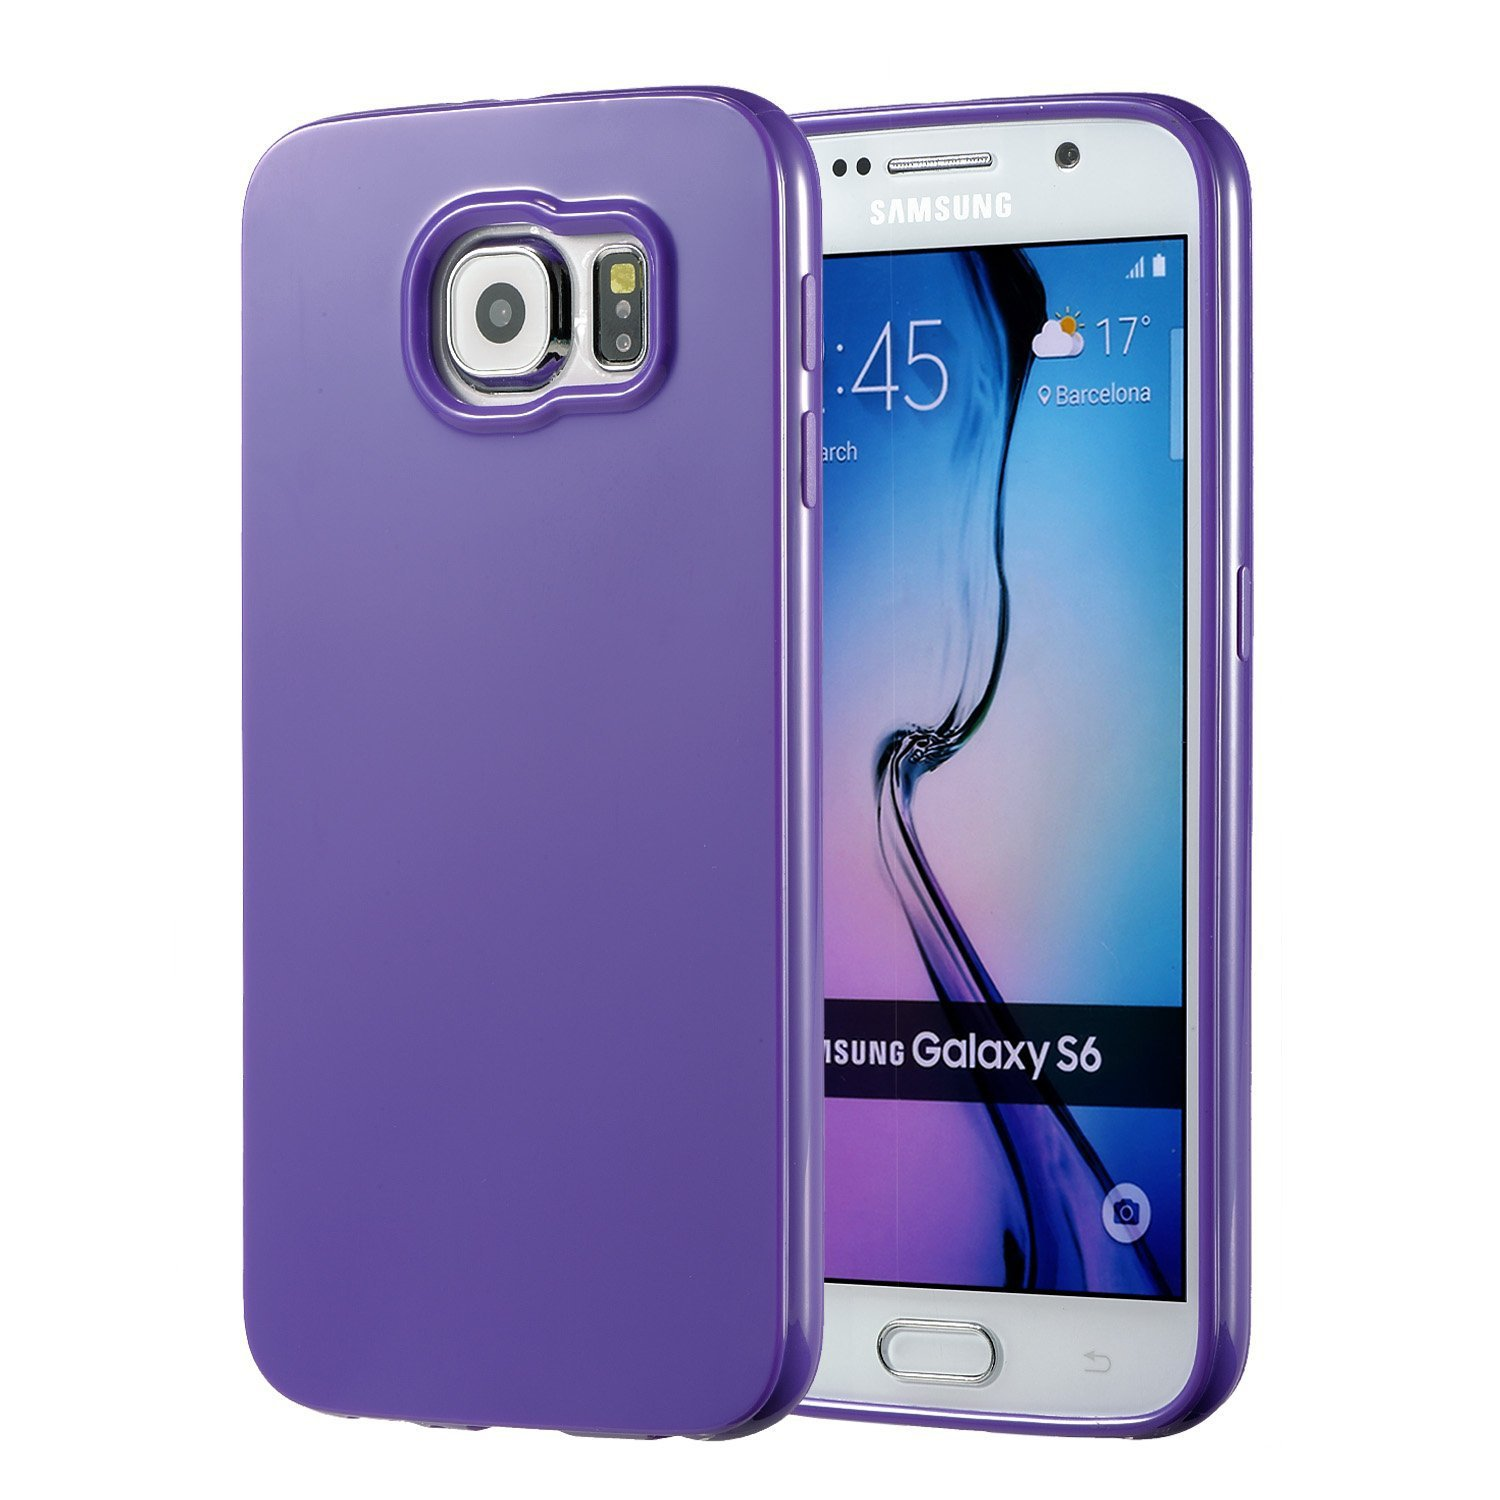 galaxy s6 case technext020 galaxy s6 case bumper new ultra thin purple. Black Bedroom Furniture Sets. Home Design Ideas